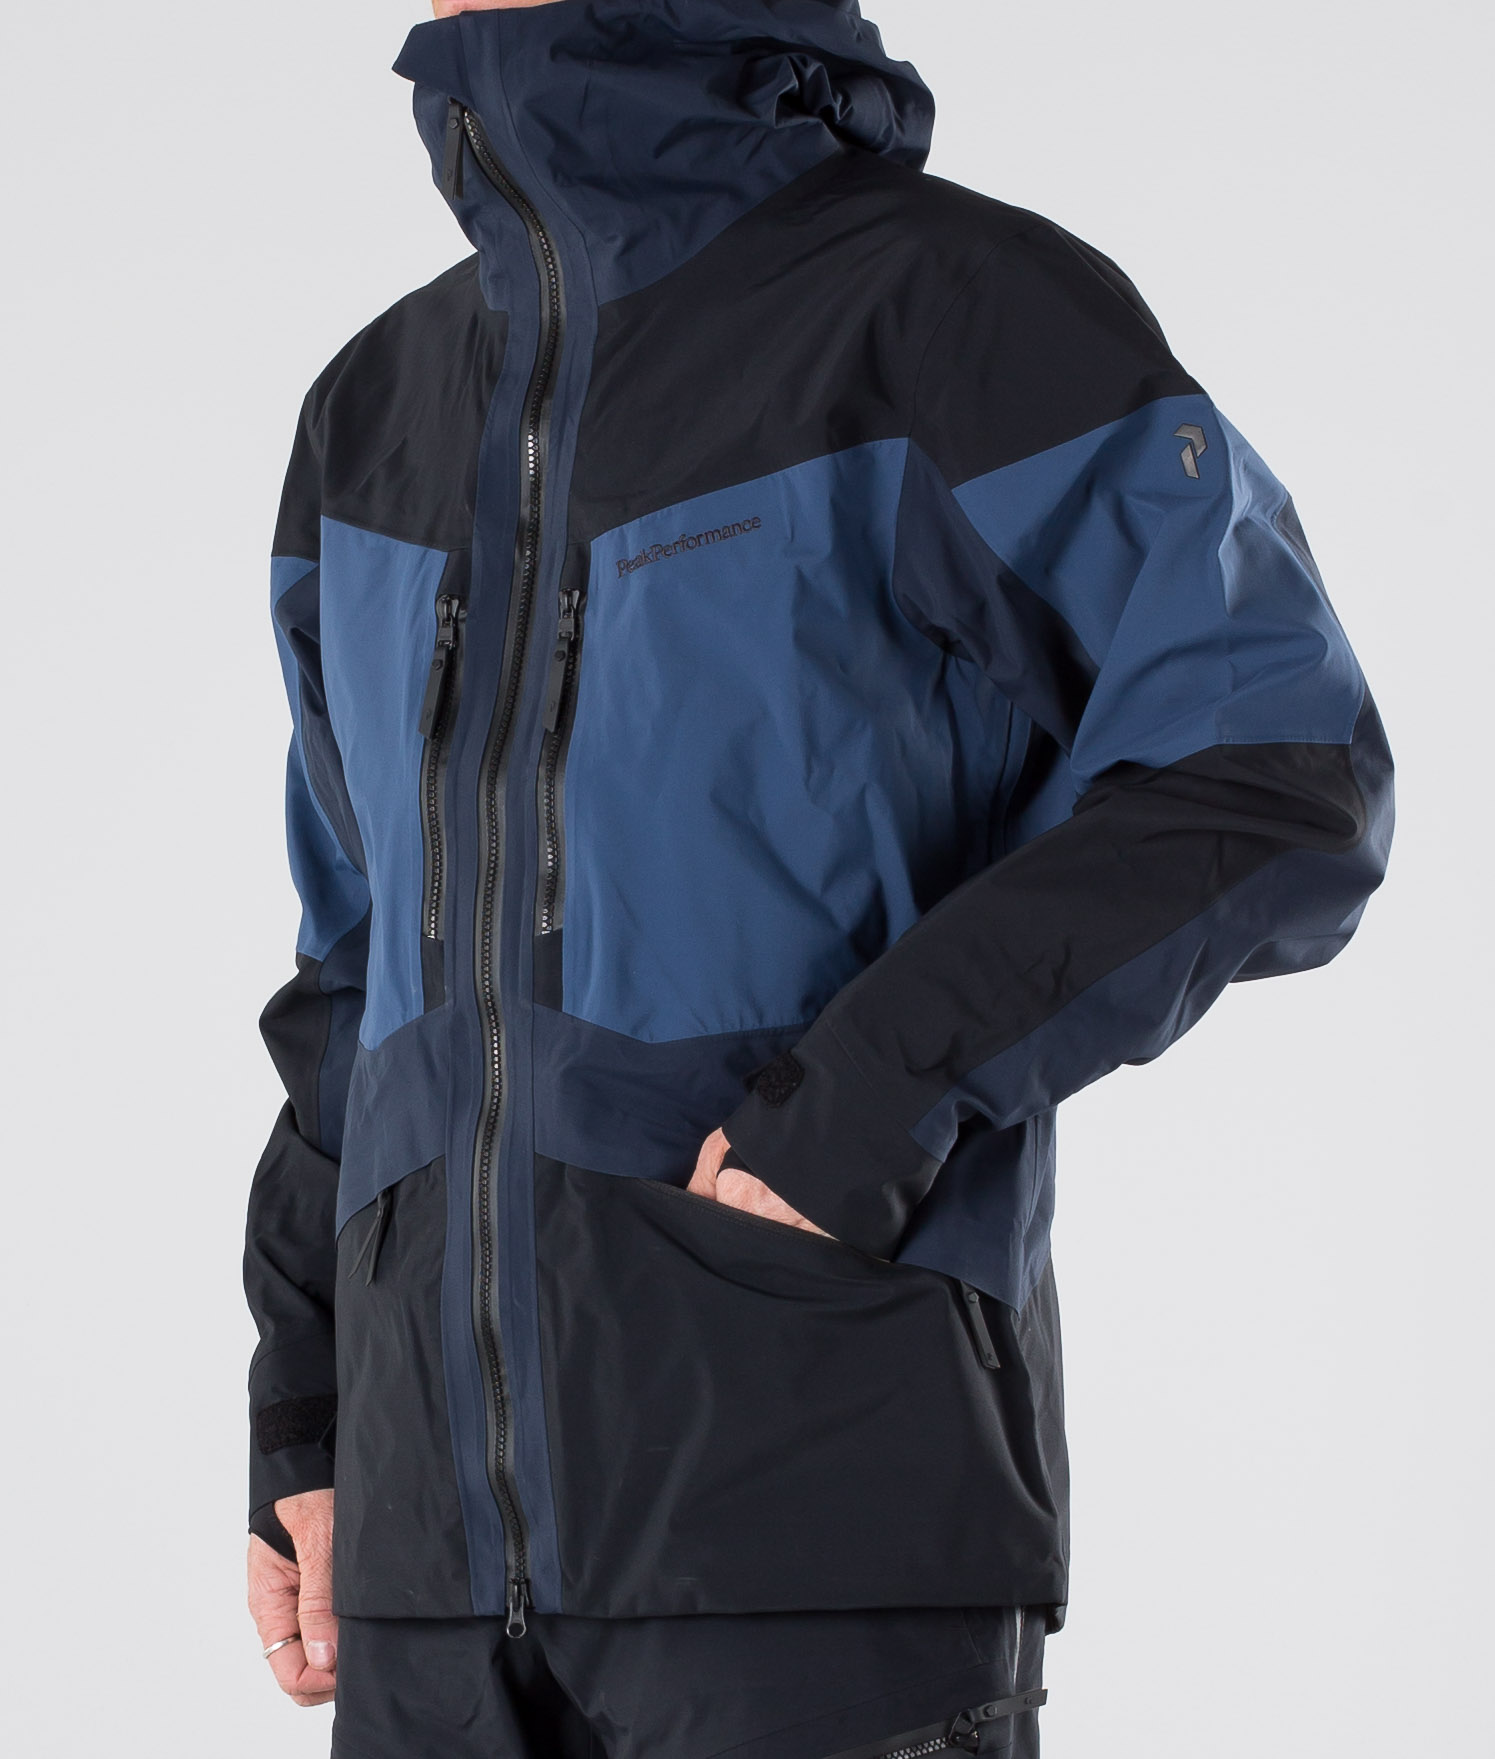 Adidas Damen Missy Elliott Winterjacken Frauen warm Outdoor